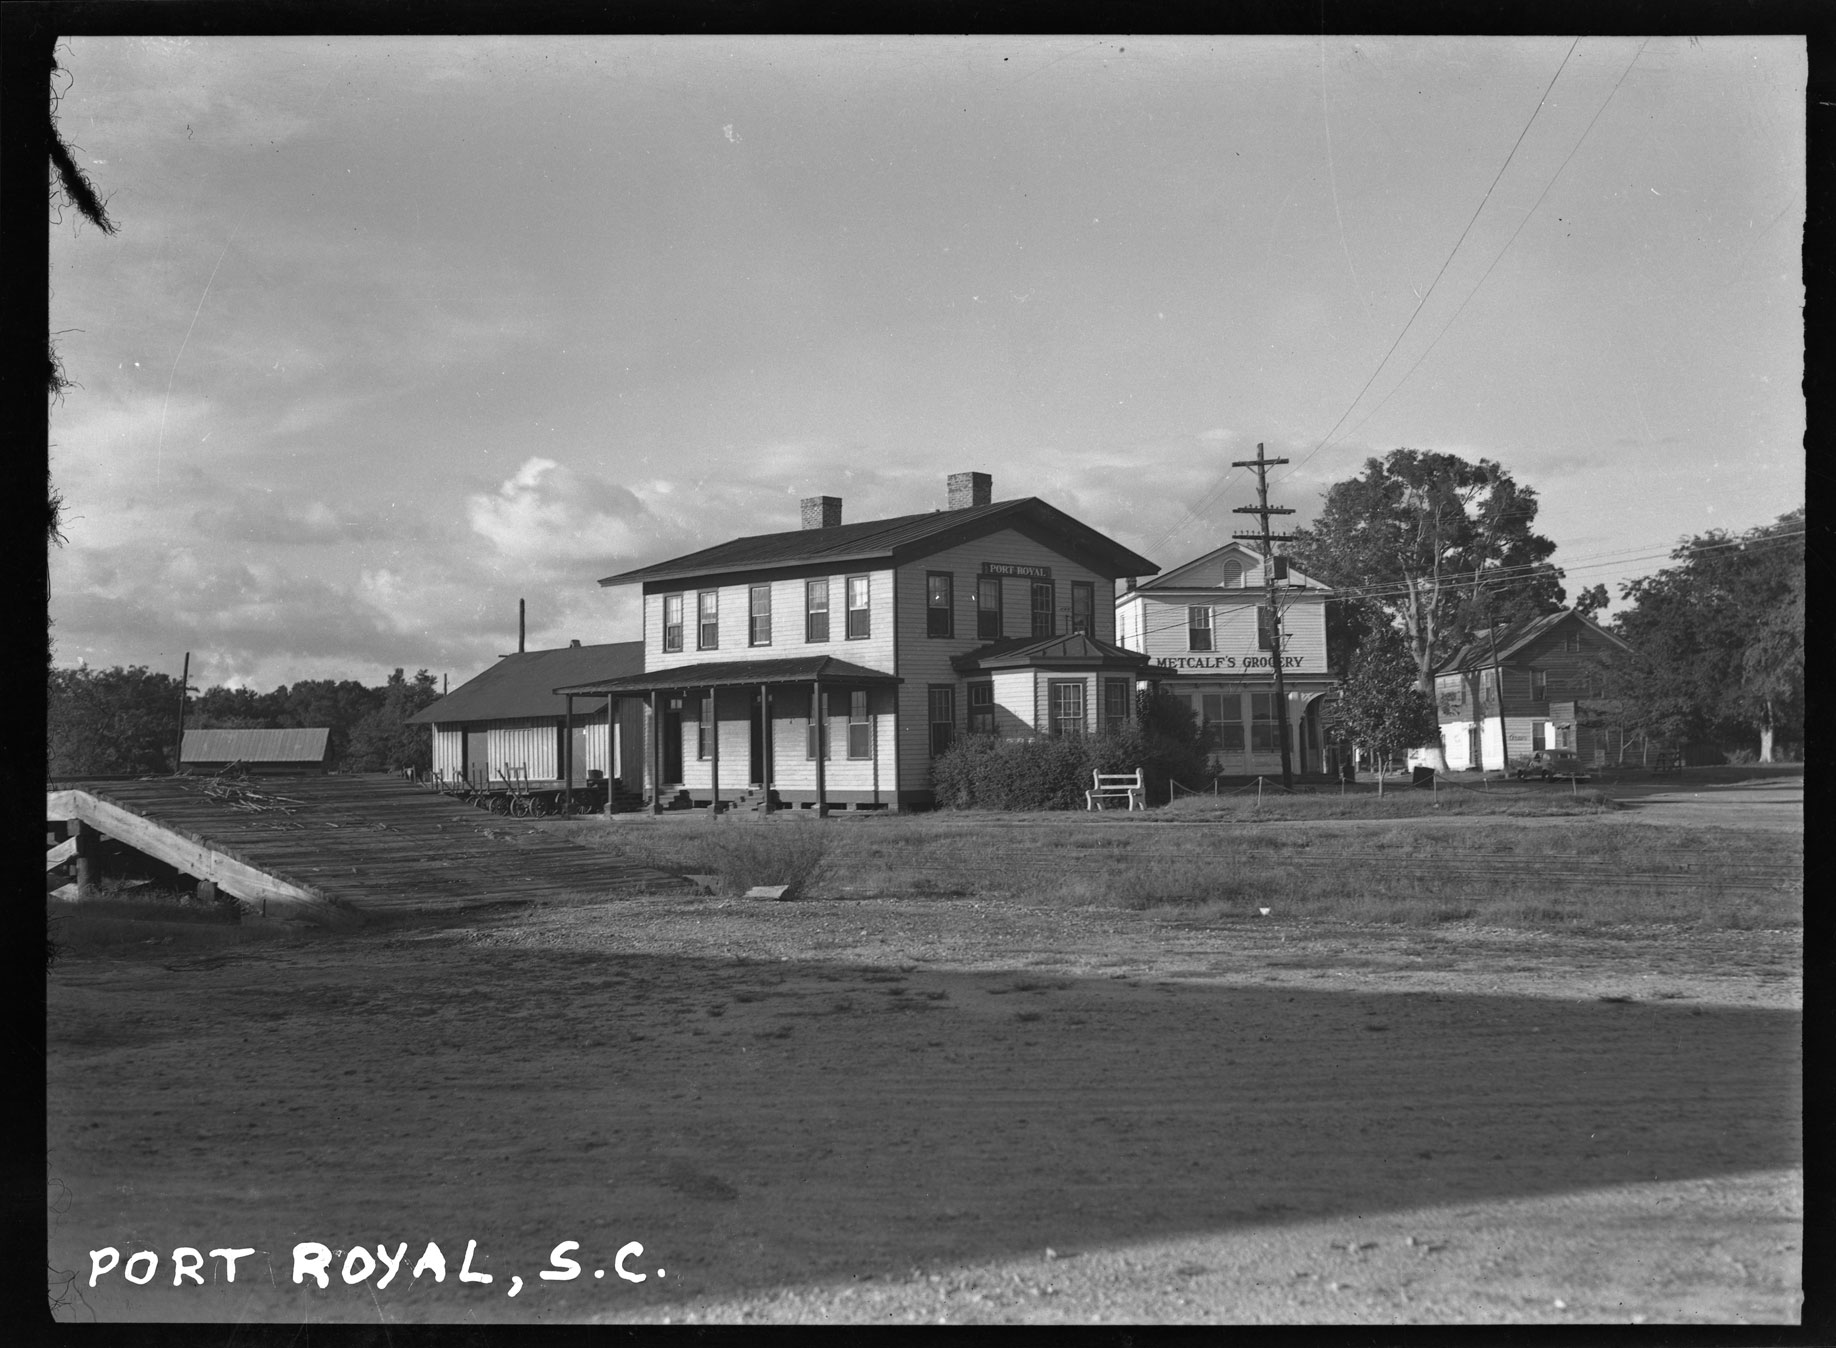 Port Royal, S.C. with Metcalf's Grocery in background